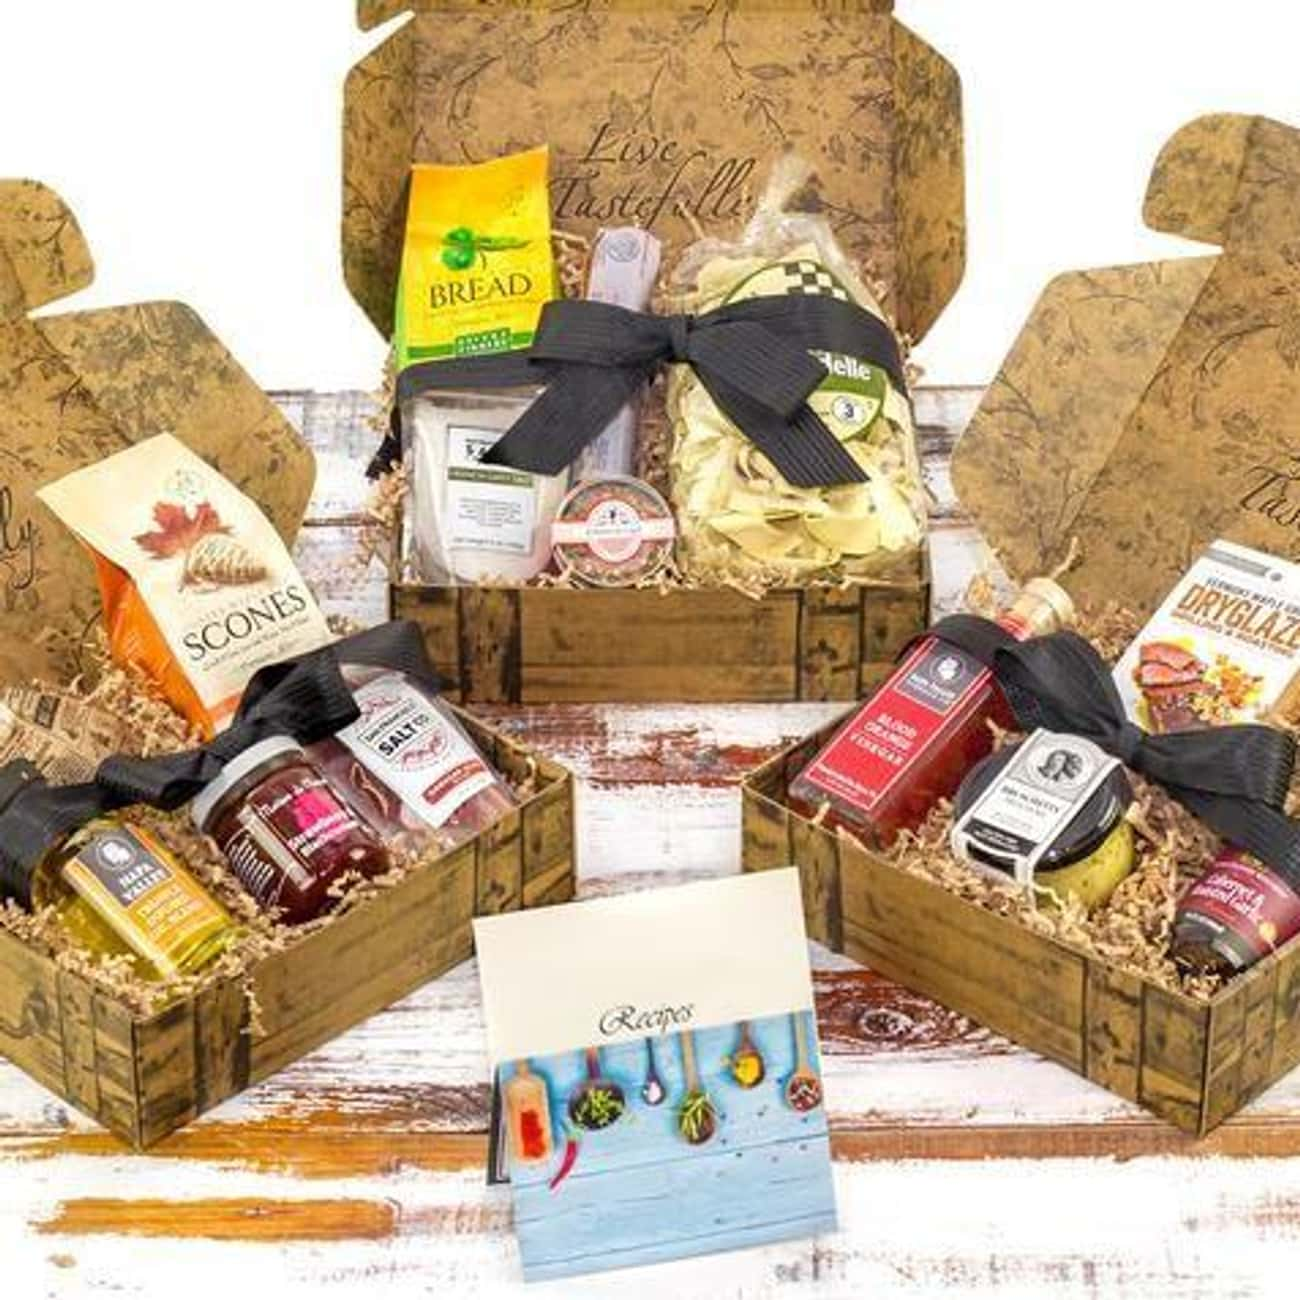 Taste Trunk is listed (or ranked) 4 on the list The Best Subscription Boxes for Snackers